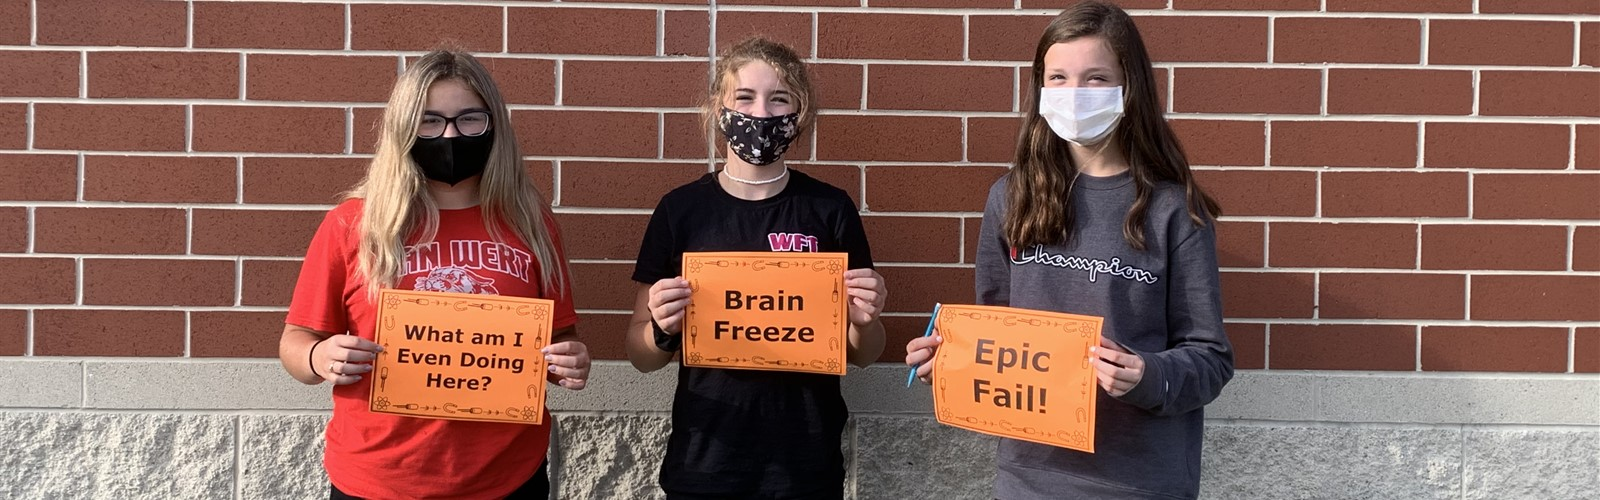 "Middle school girls who failed their escape room posed with signs saying ""What am I even doing here?"" ""Brain freeze"" and ""Epic fail!"""